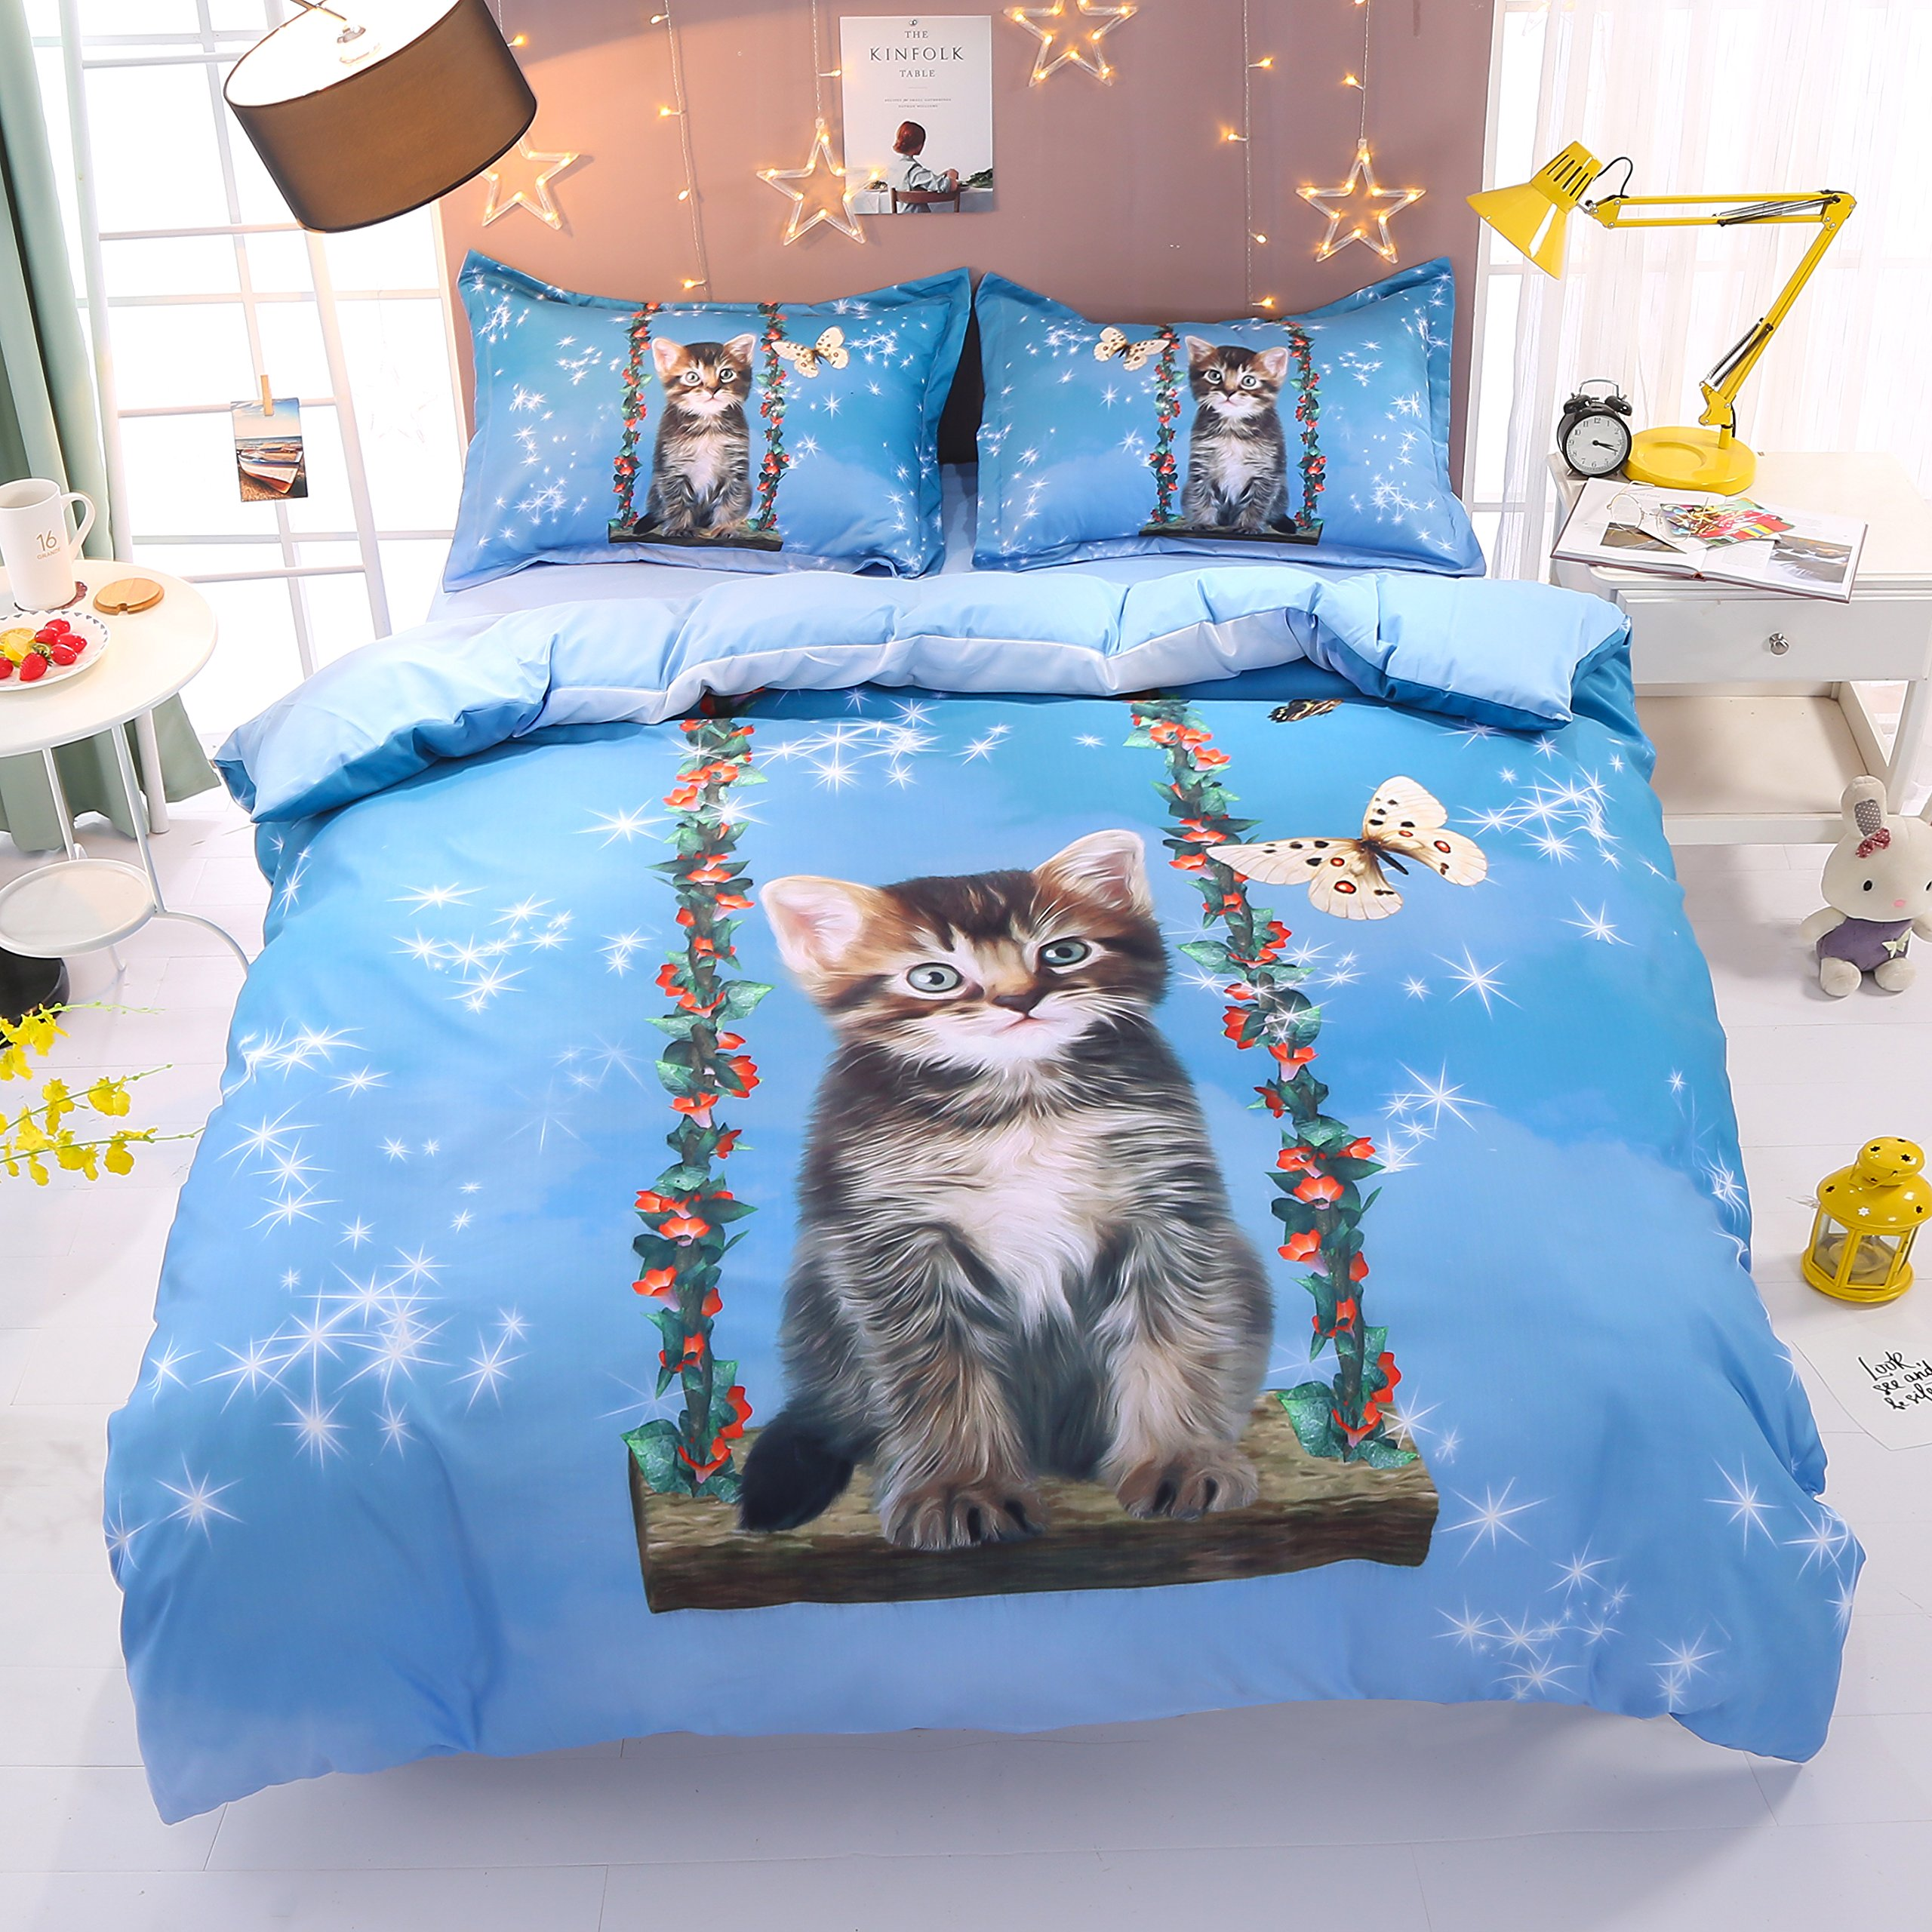 Beddinginn Cute Cat Swing Bedding Set Girls Loves 3d Duvet Cover Set Butterfly Print Girls Bed Set King Size by Beddinginn (Image #2)